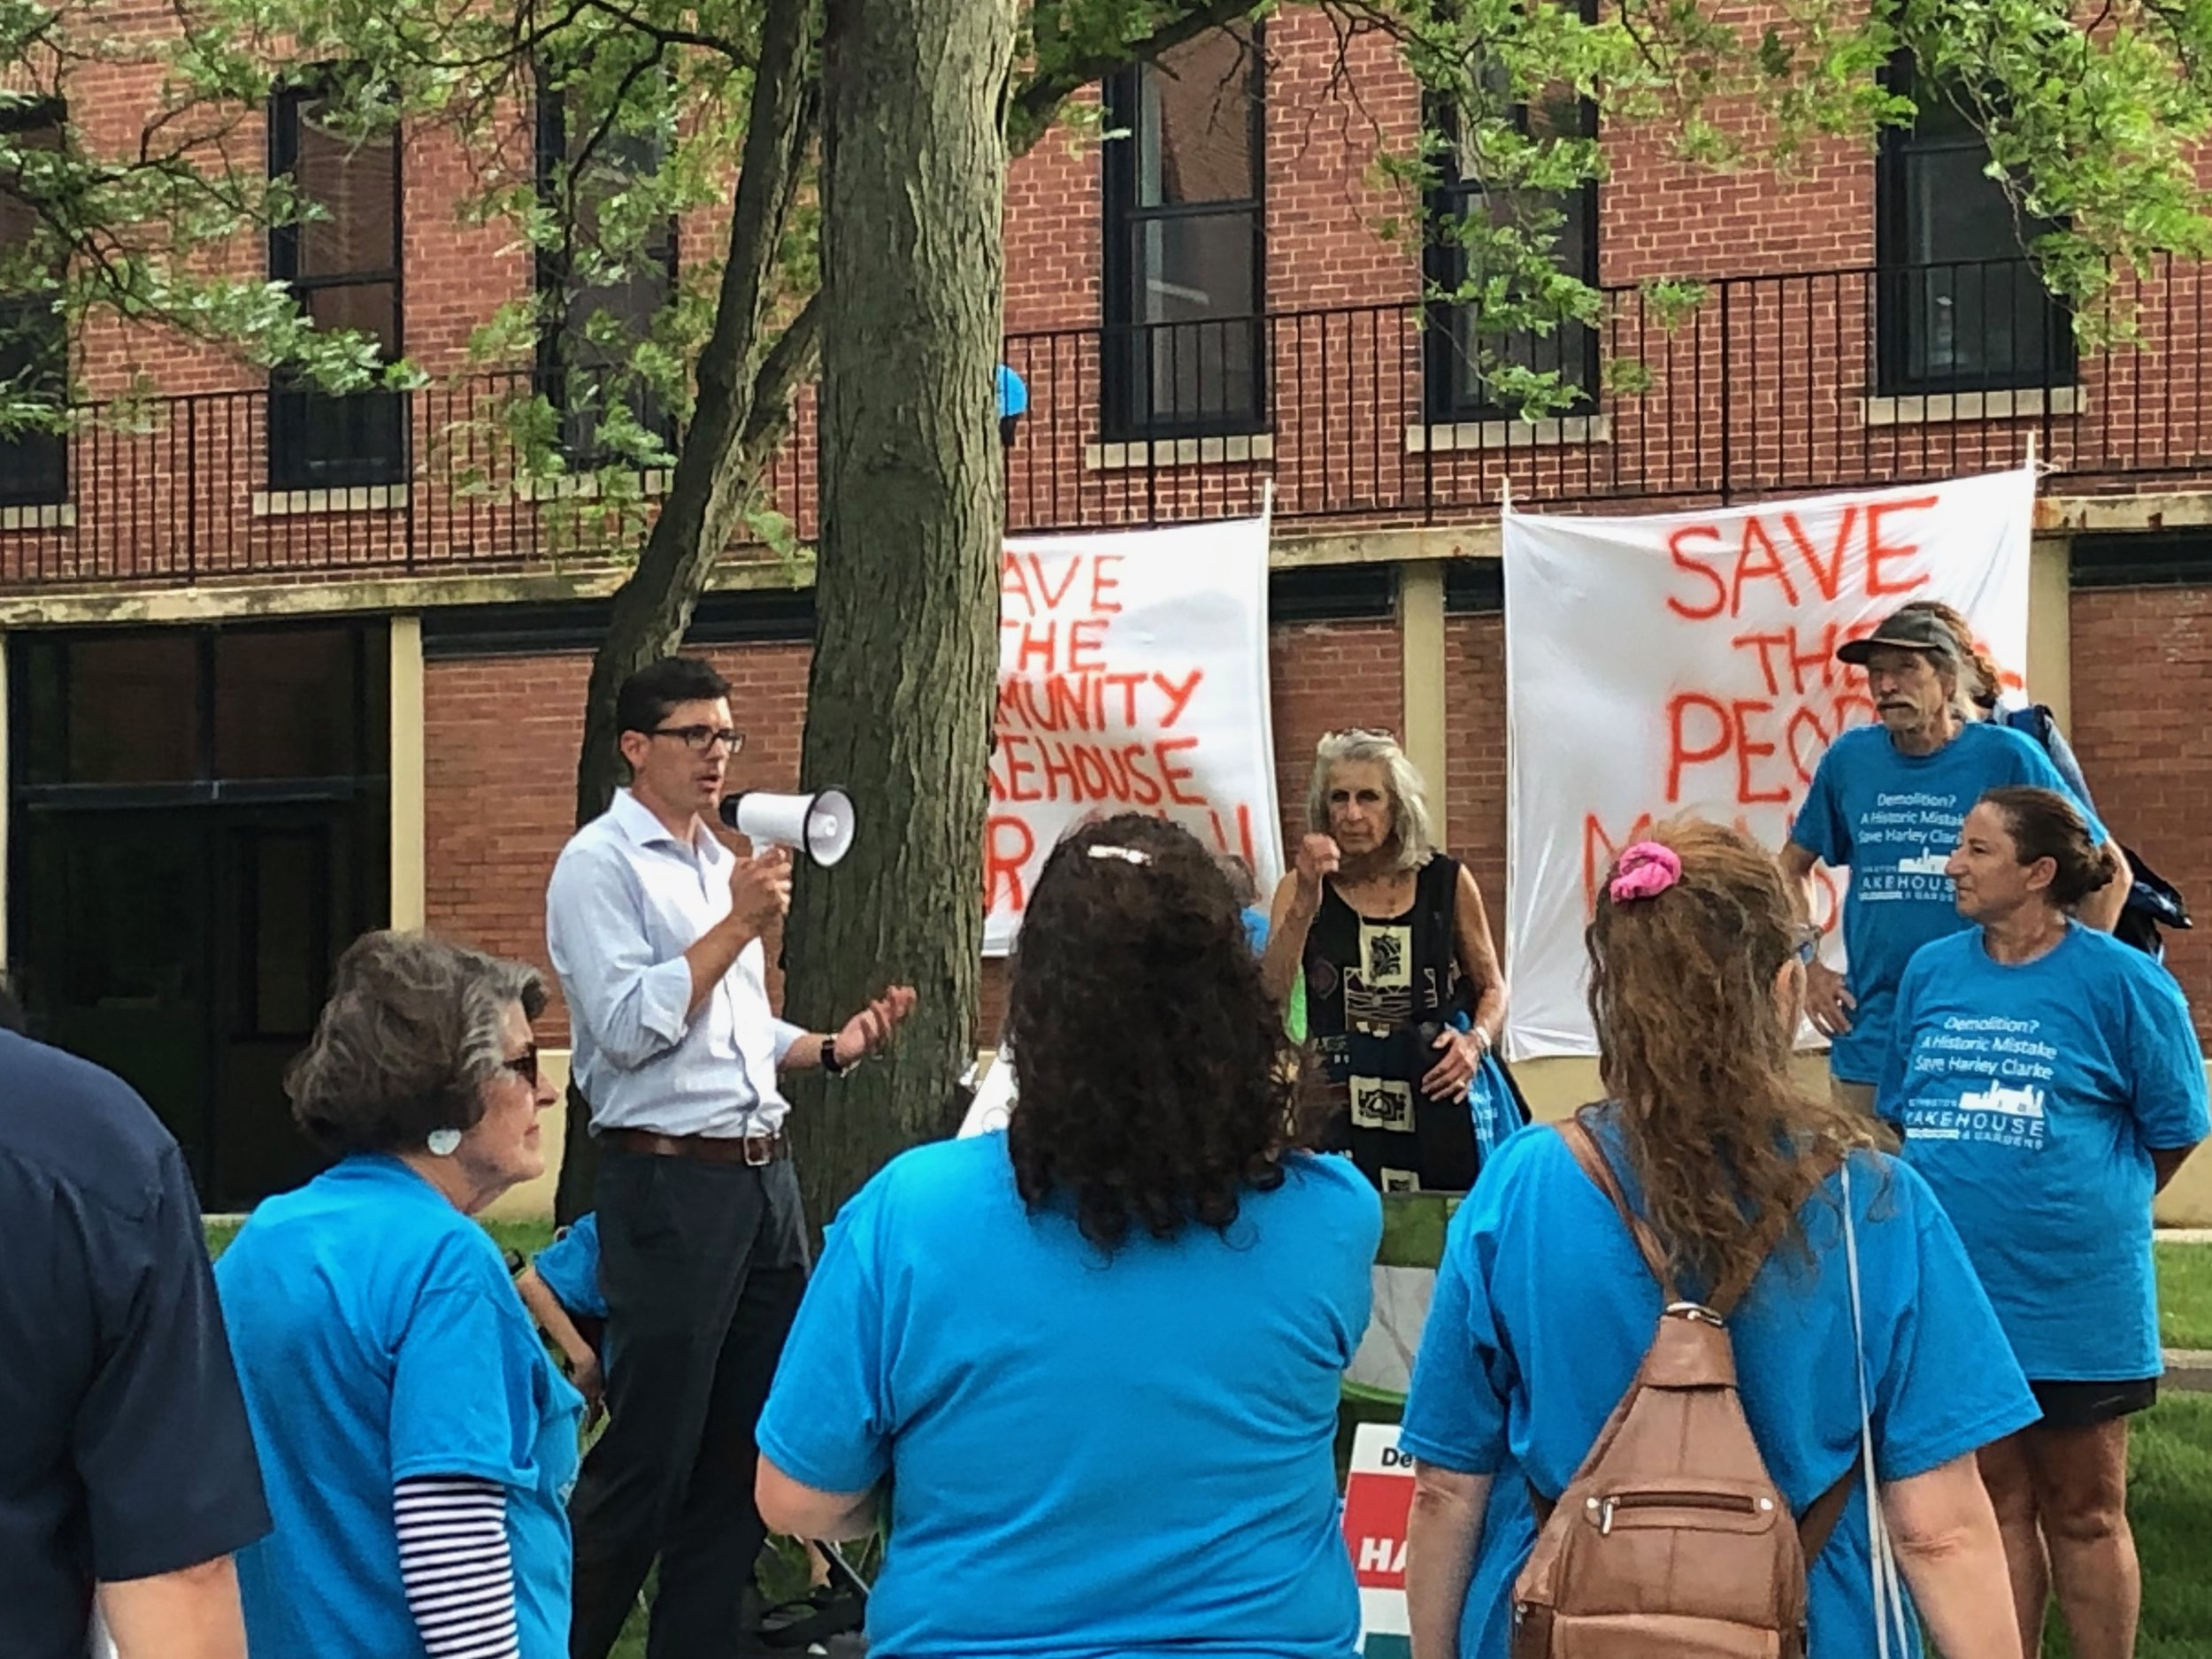 Tom Hodgman, president of Evanston Lakehouse & Gardens, rallies support for preservation of the Harley Clarke Mansion before Monday's City Council meeting. (One Illinois/Ted Cox)